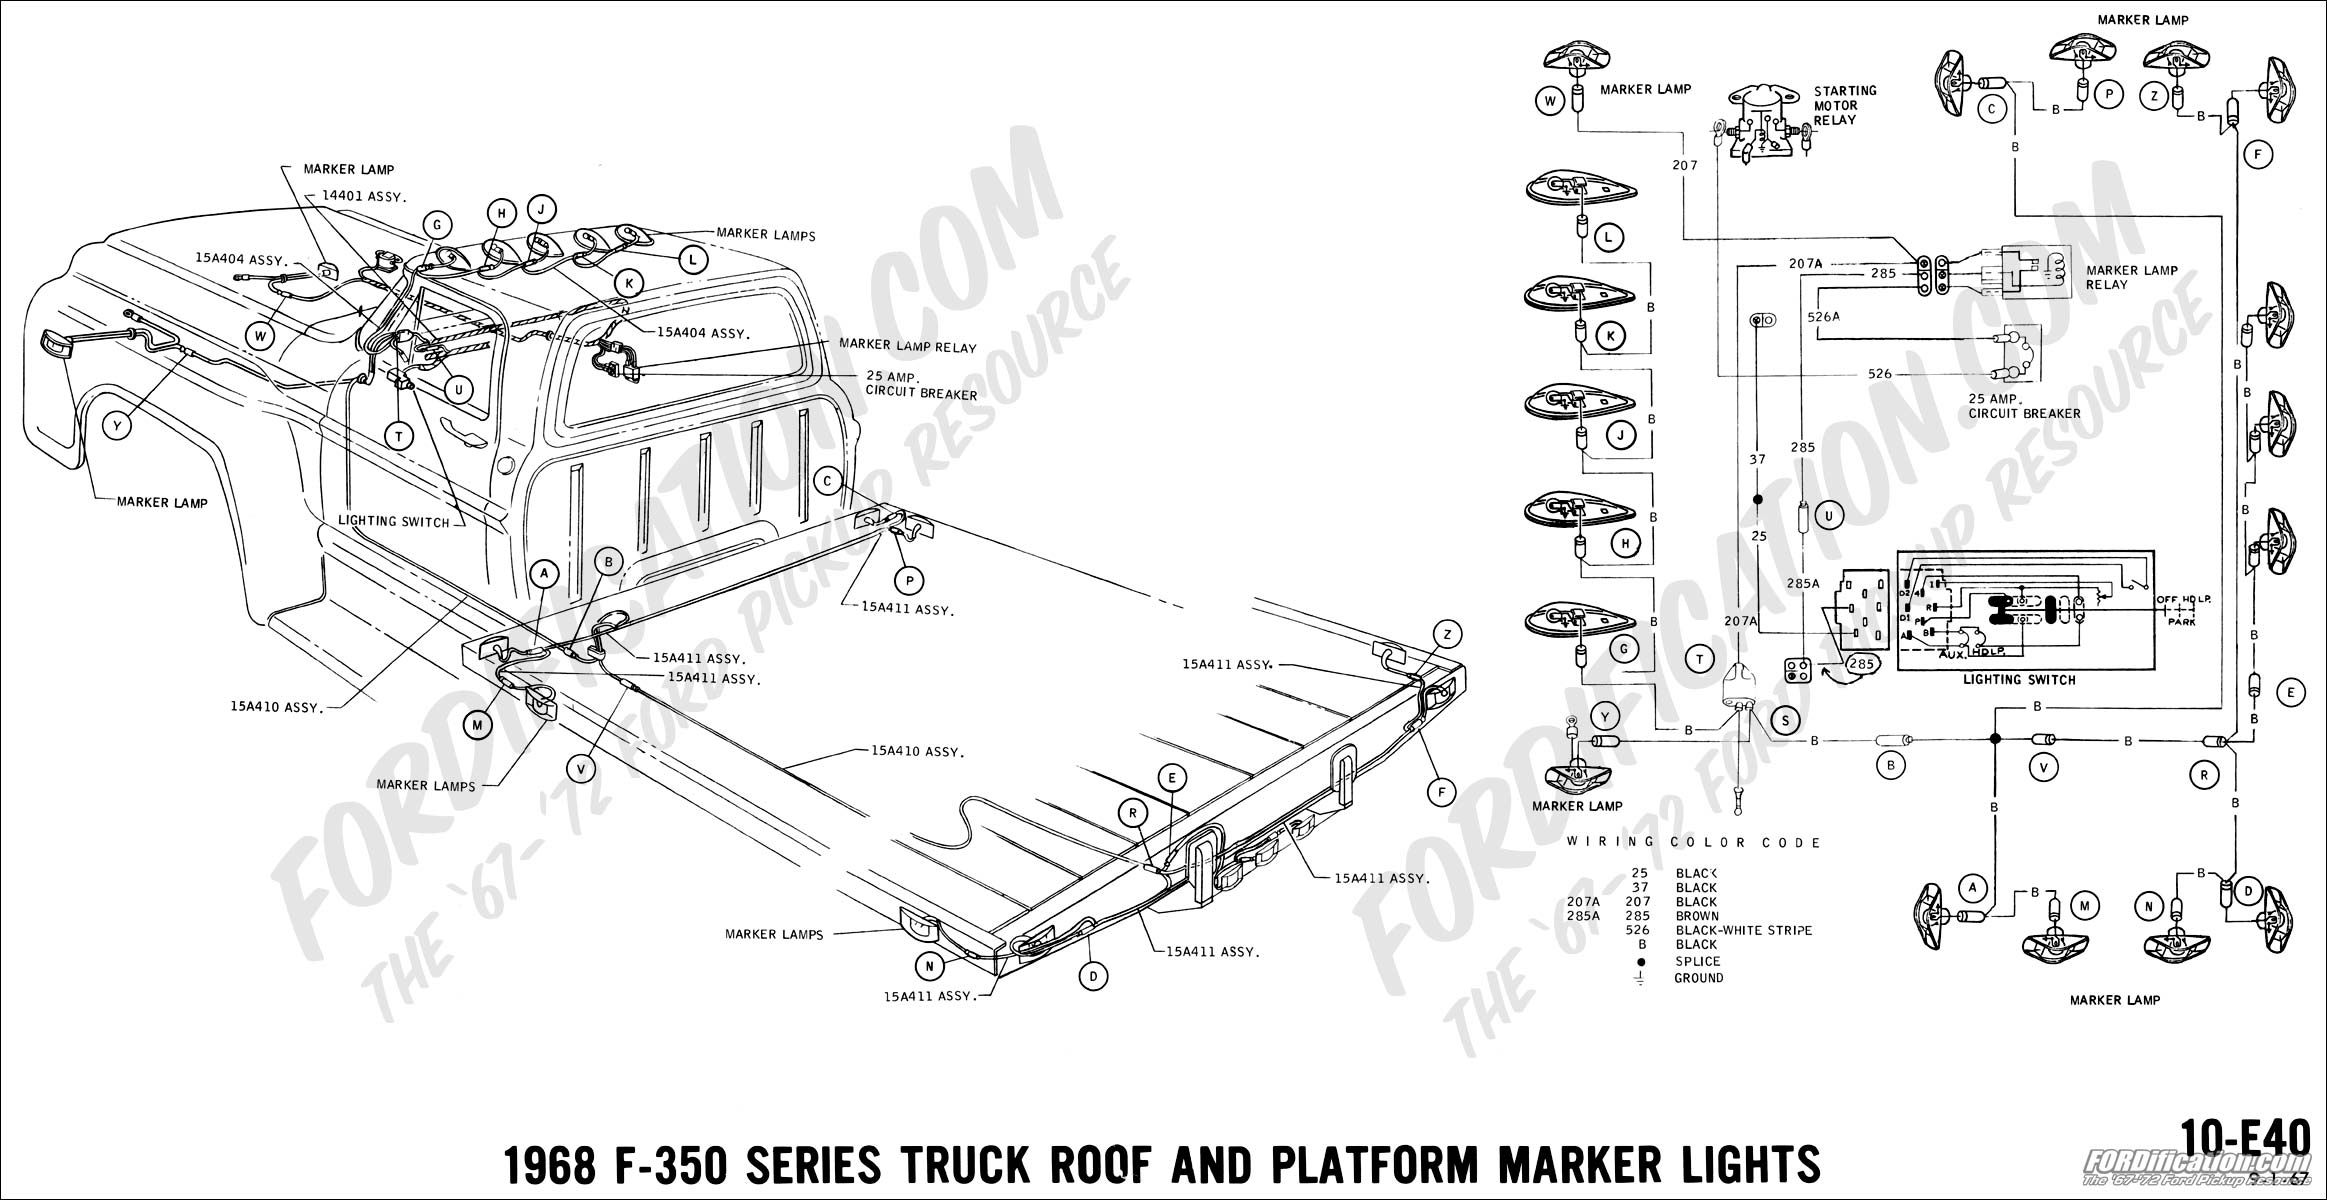 Dodge Cab Light Wiring Harness - Wiring Diagram Blog Data on dodge ram 1500 wiring diagram, dodge transmission cooler lines, dodge transmission dipstick, dodge transmission sensors, dodge ram wiring connectors, dodge transmission filter, dodge transmission control module, dodge transmission fuse, dodge ram harness, dodge ram 2500 wiring diagram, dodge magnum transmission, dodge ram wiring schematics, dodge transmission oil cooler, dodge transmission pressure switch, dodge transmission valve body, dodge transmission pump, dodge transmission controller, dodge dakota wiring schematic, dodge transmission connectors, dodge transmission relay,